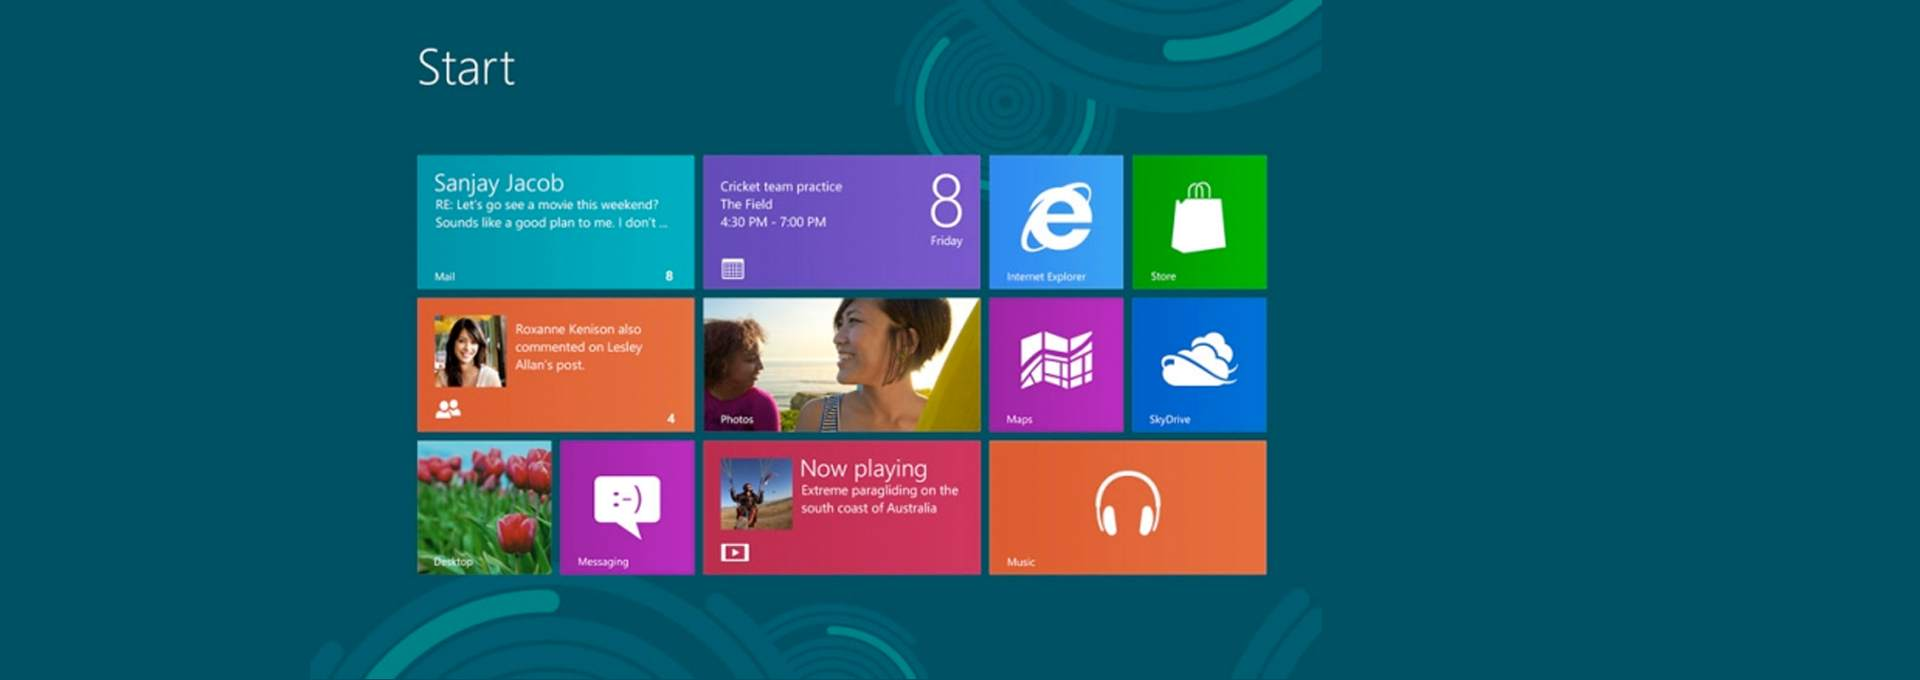 Selon un expert en interfaces les utilisateurs vont détester l'interface de Windows 8